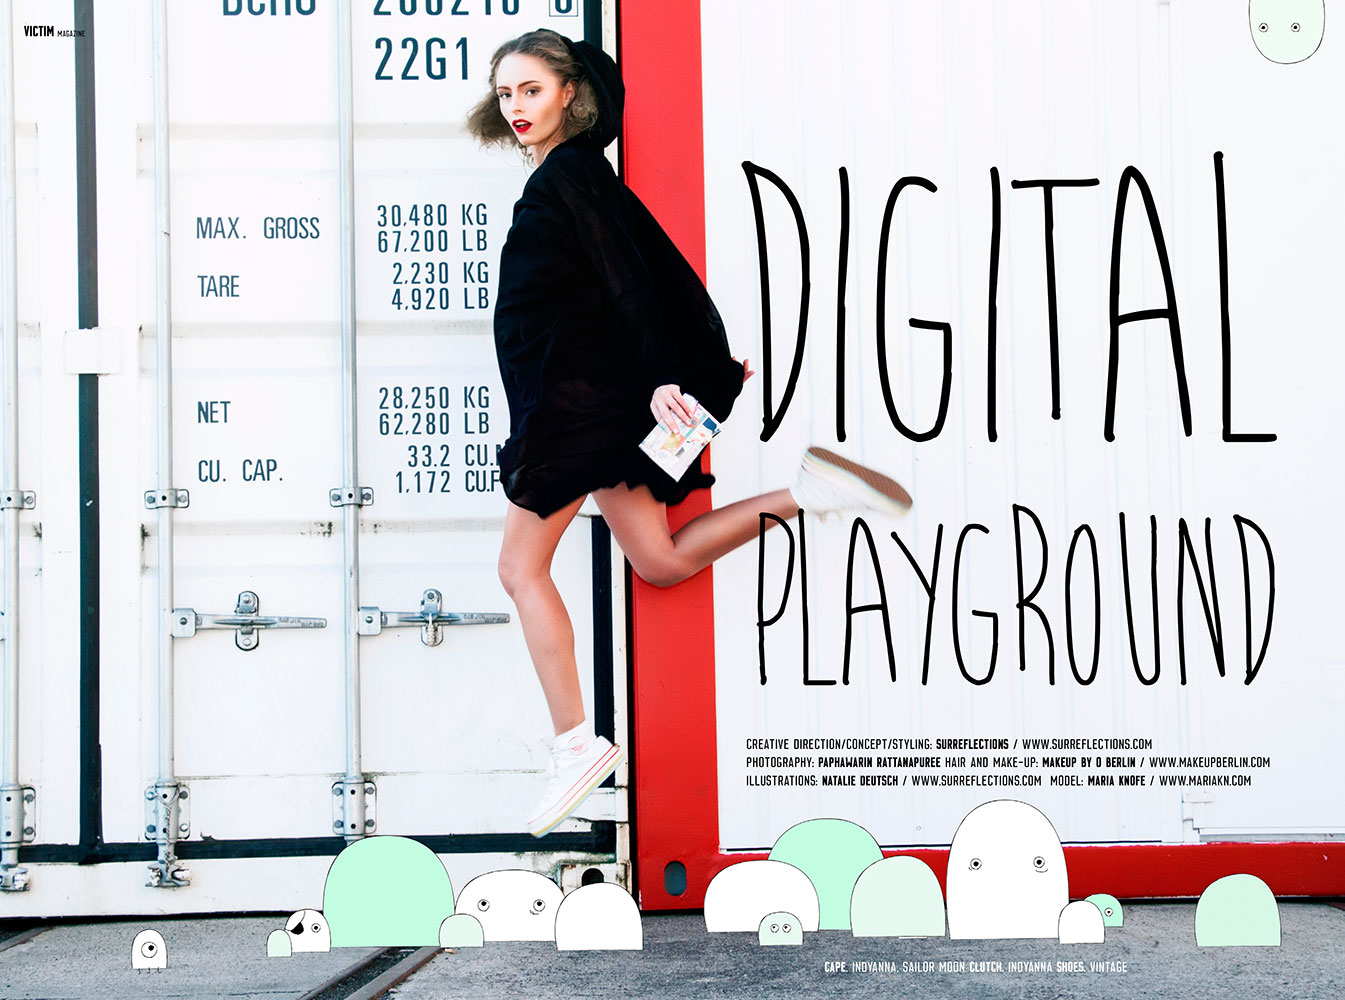 digital playgroud